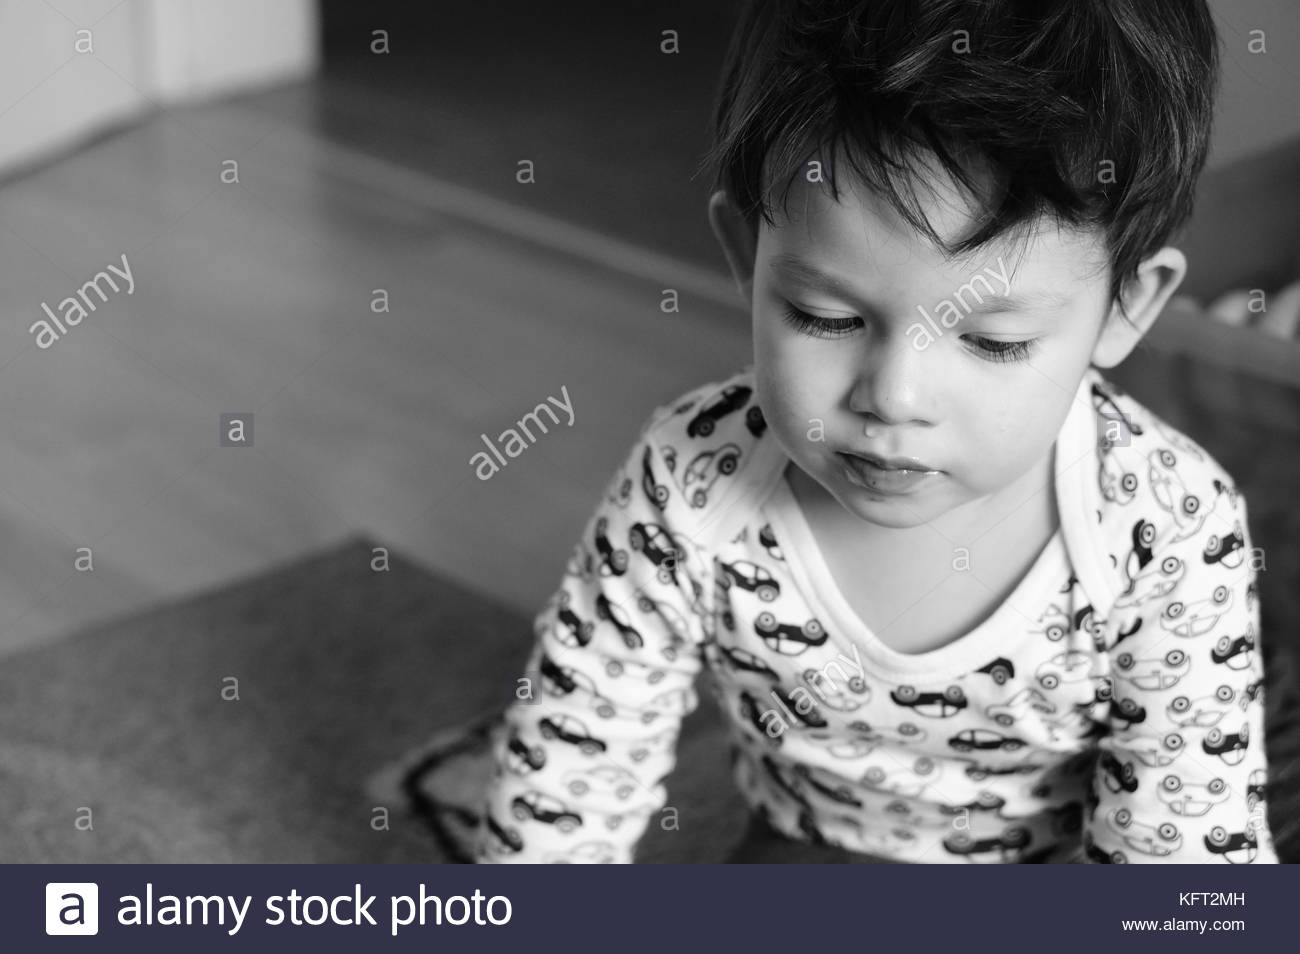 Sick baby with cold sitting on the floor - Stock Image